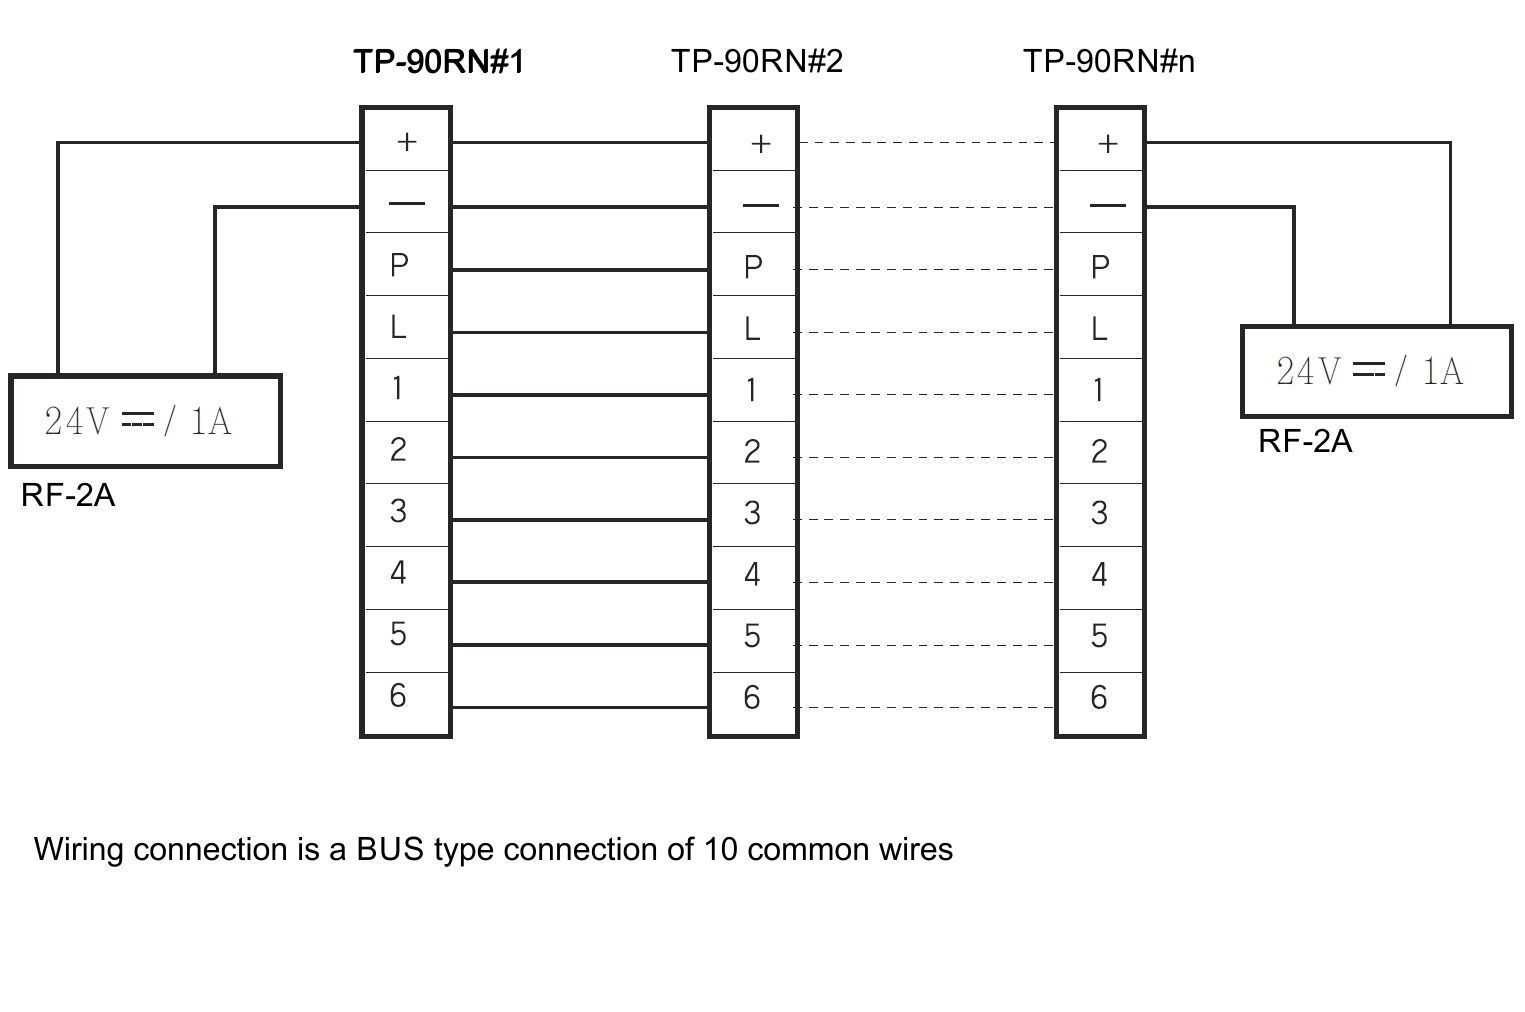 Commax Intercom Wiring Diagram 30 Images Vdp Tp 90rn Interphone System Connectable Up To 90